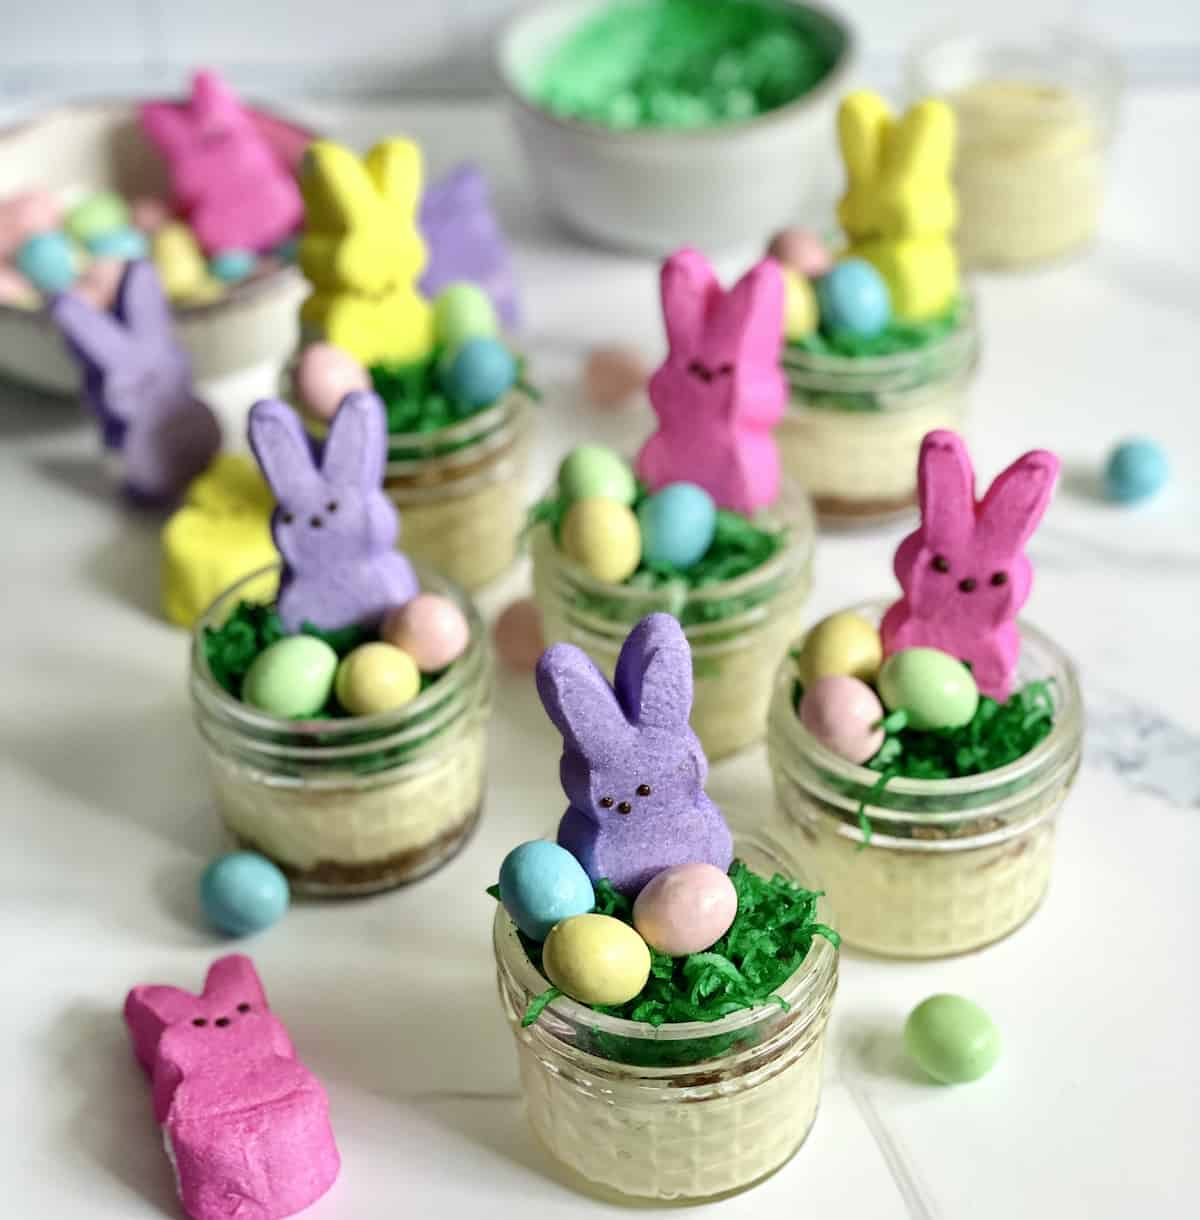 Easter Bunny cheesecakes in jars with green grass, chocolate eggs, and a bunny peep